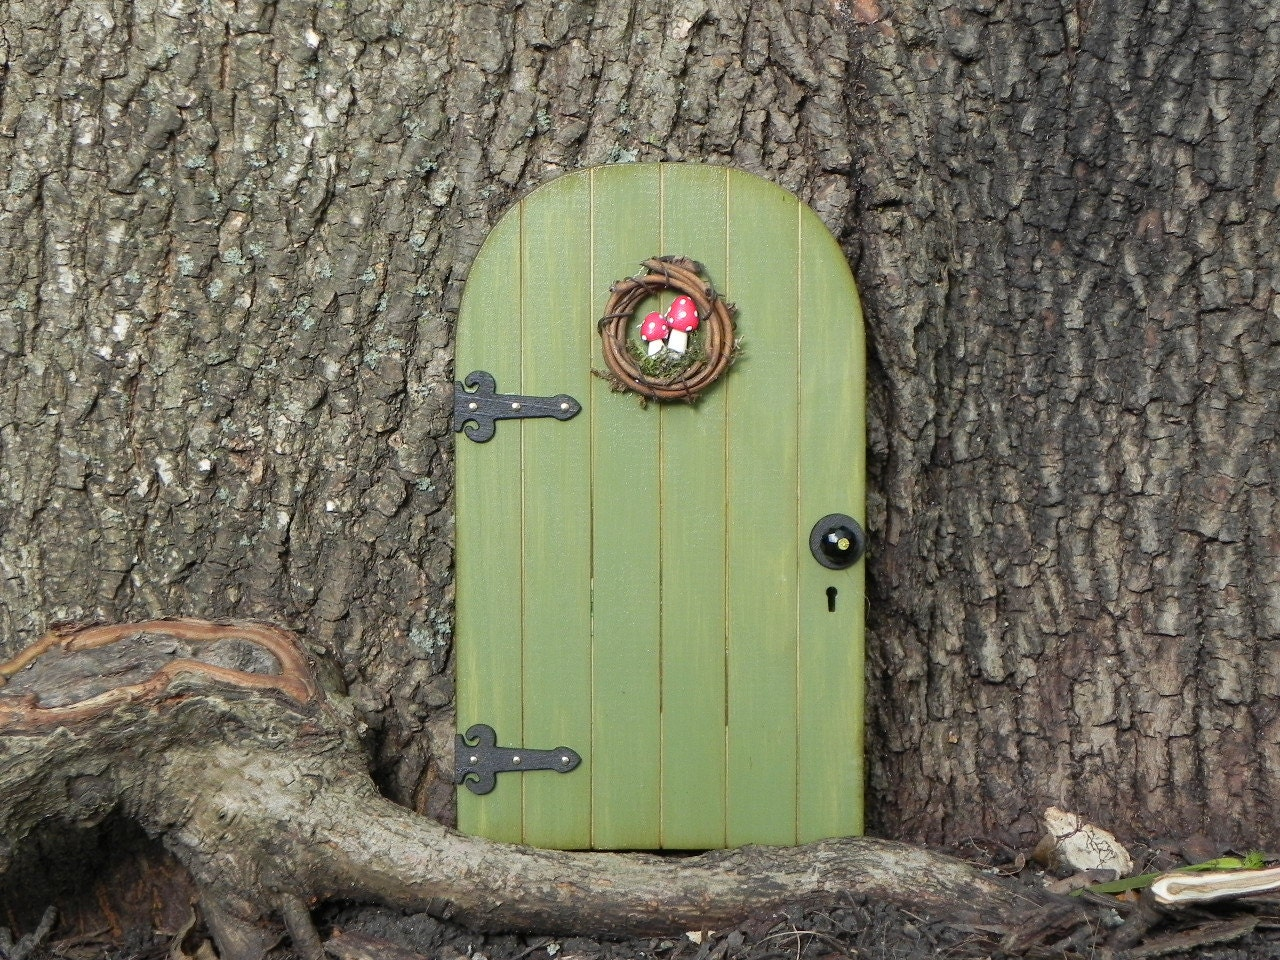 Fairy Door Fairy Garden Miniature Wood Fern Green With Wreath